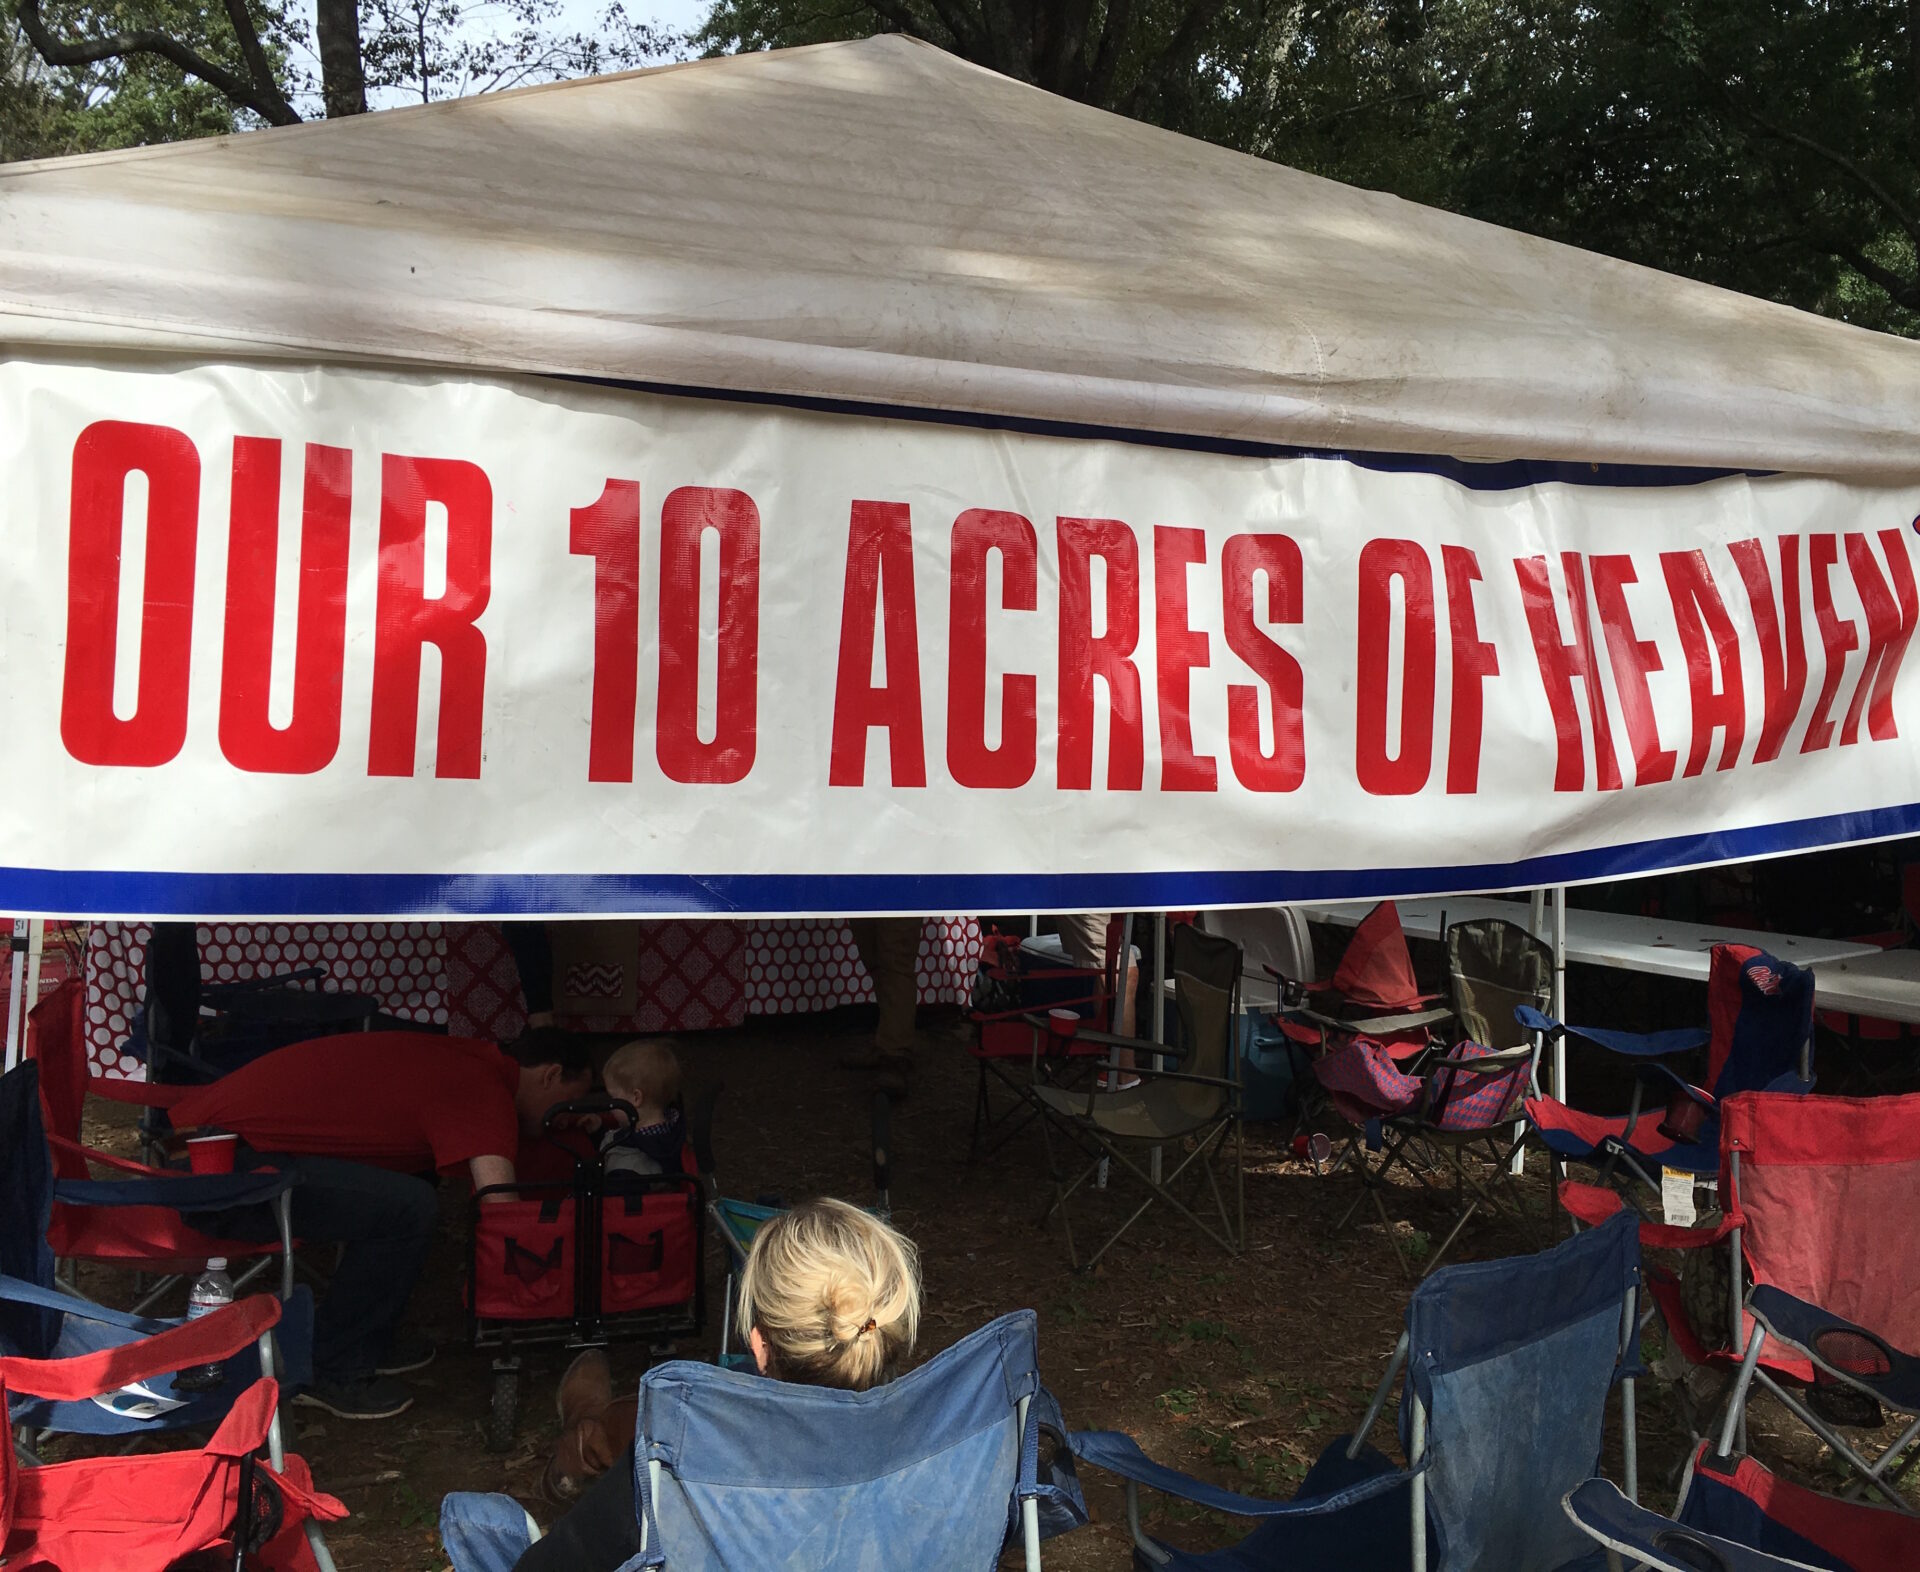 Ole miss tailgating traditions our 10 acres of heaven tent tailgate billboard 176x512 img4523 arubaitofo Gallery